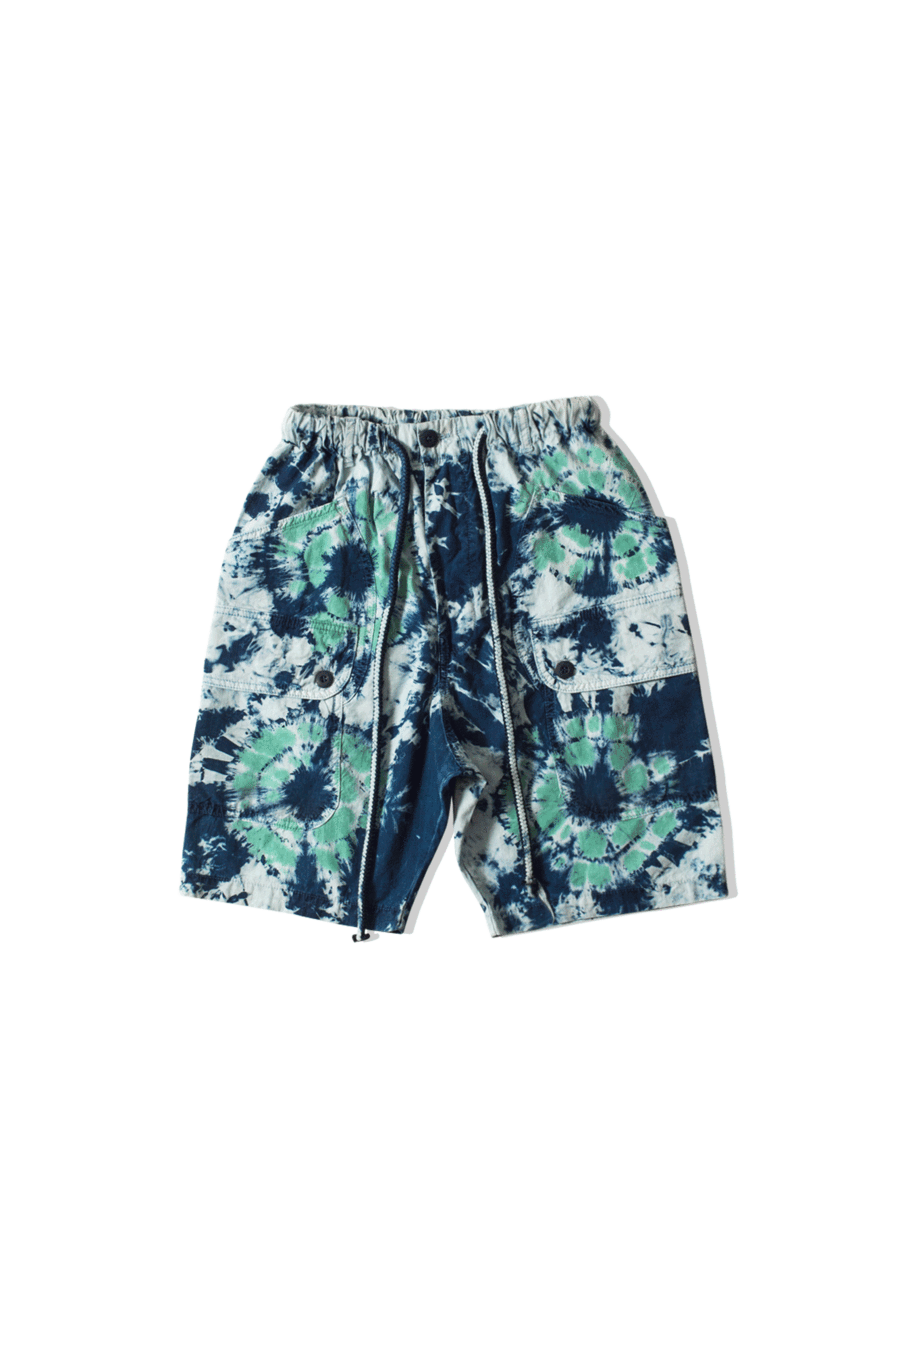 Dr. Collectors Pantaloni corti Short Shibori Blu P30SHORTS#HIBORI#BLUE#XS - One Block Down